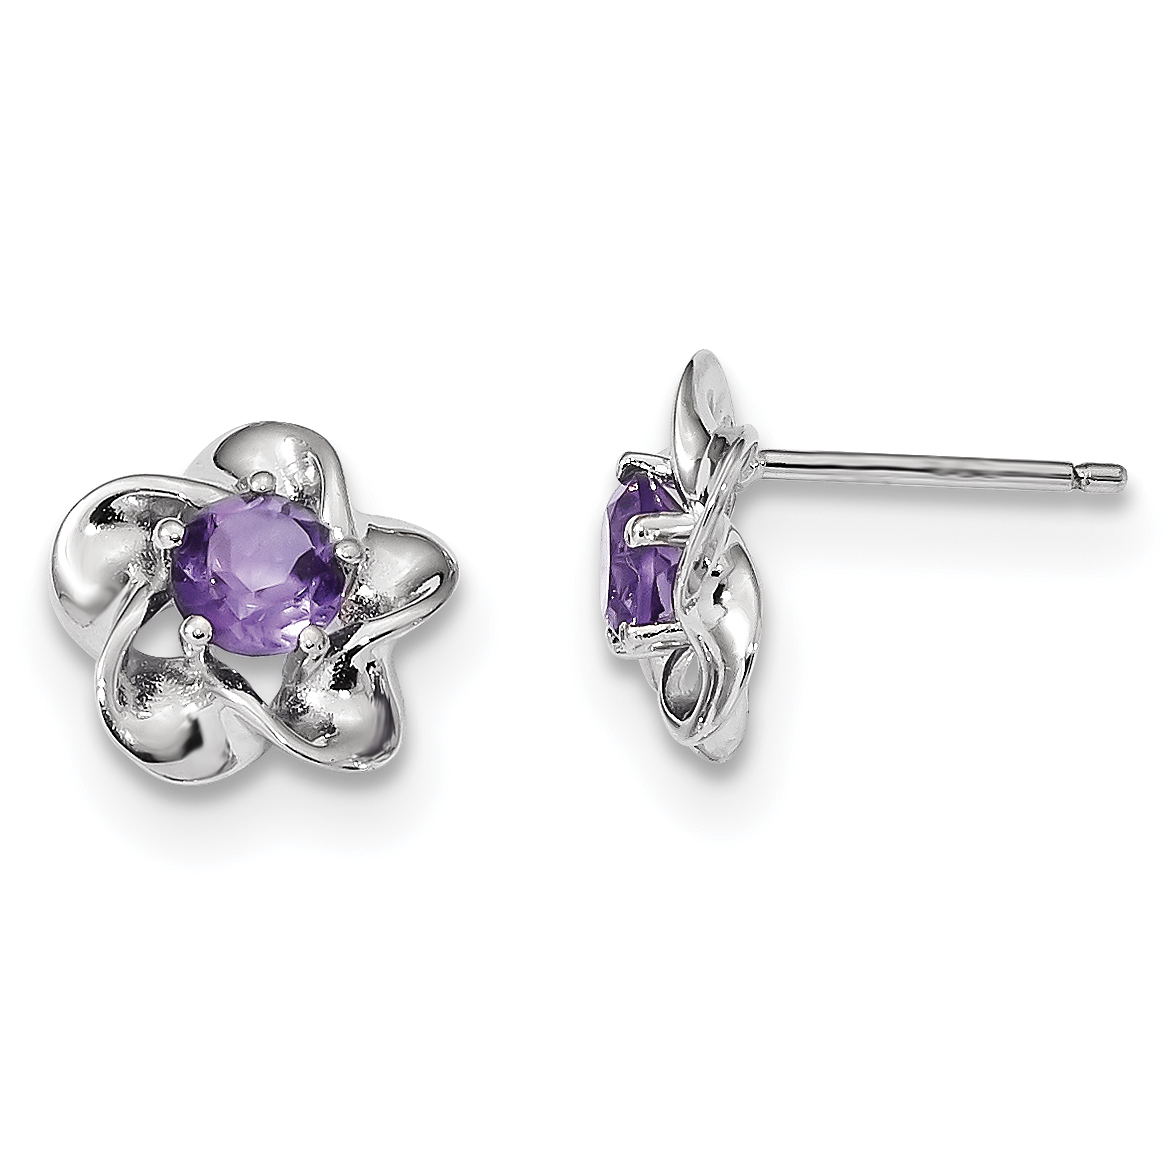 925 Sterling Silver Floral Purple Amethyst Post Stud Earrings Set Birthstone February Flower Fine Jewelry Gifts For Women For Her - image 2 of 2